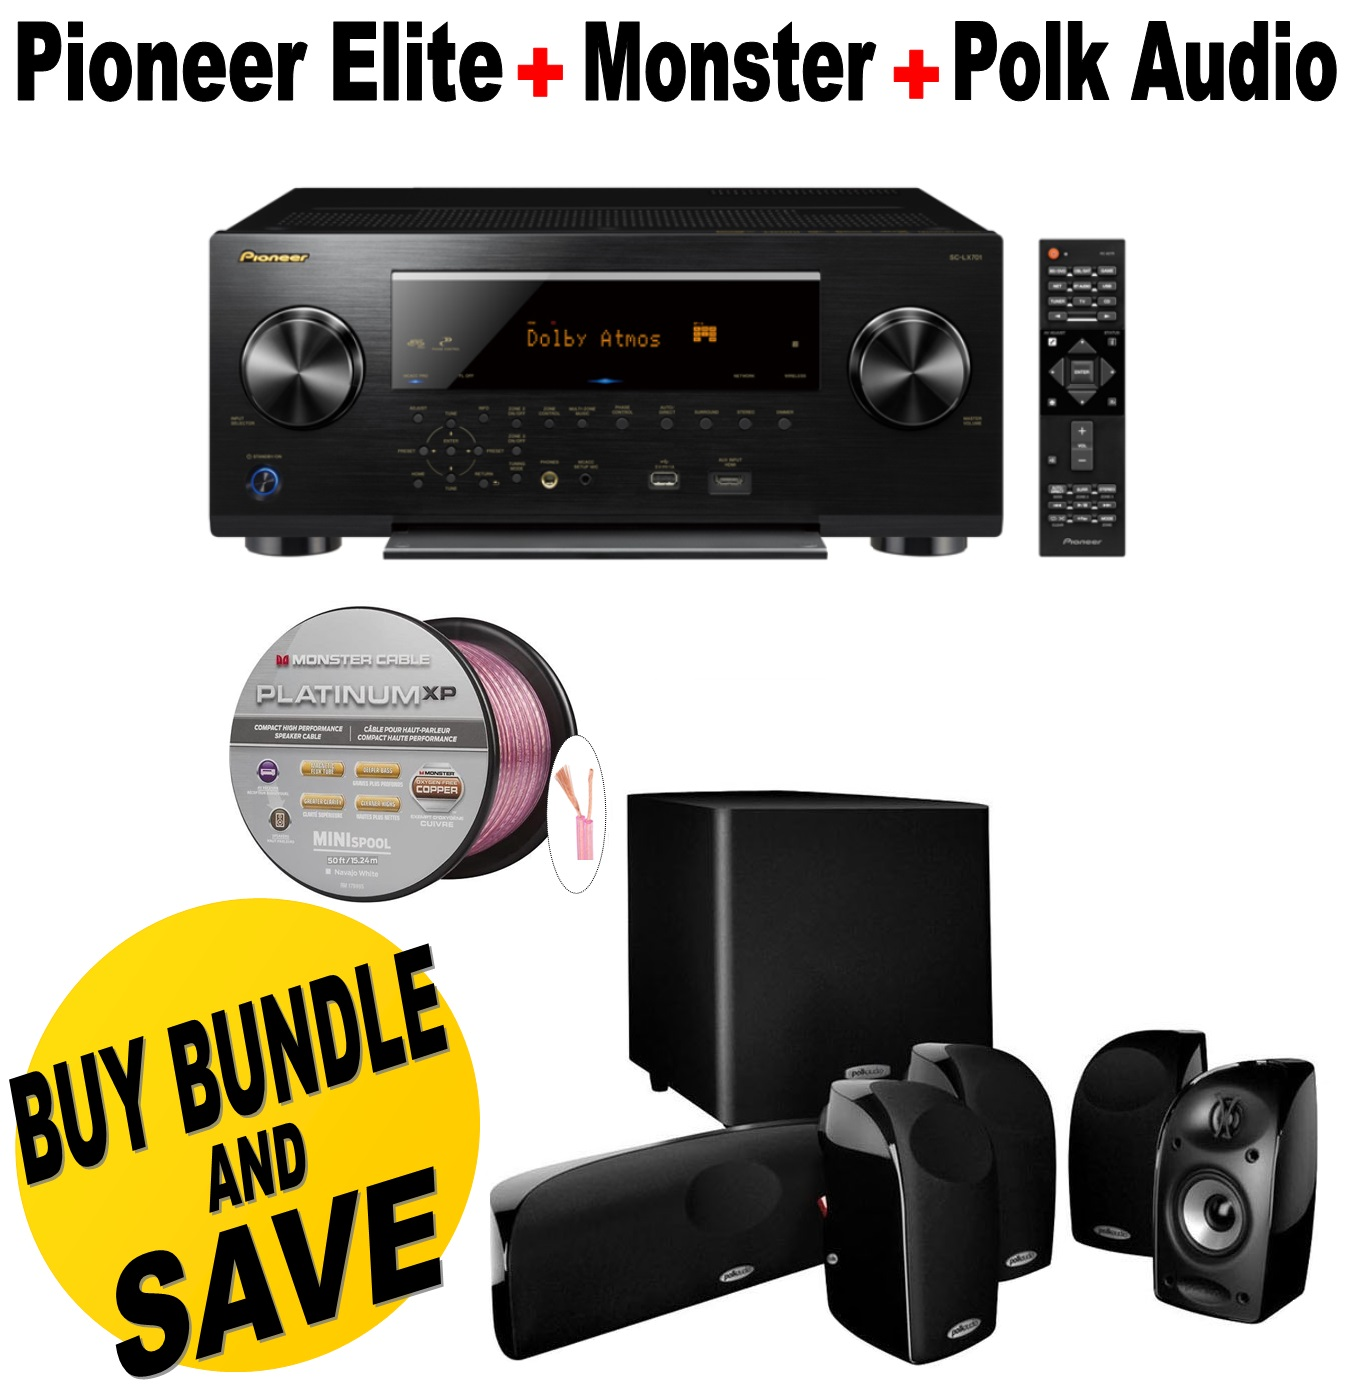 Pioneer Network AV Receiver Audio & Video Component Receiver,Black (SC-LX701) + Polk Audio 5.1 TL1600 Speaker System +